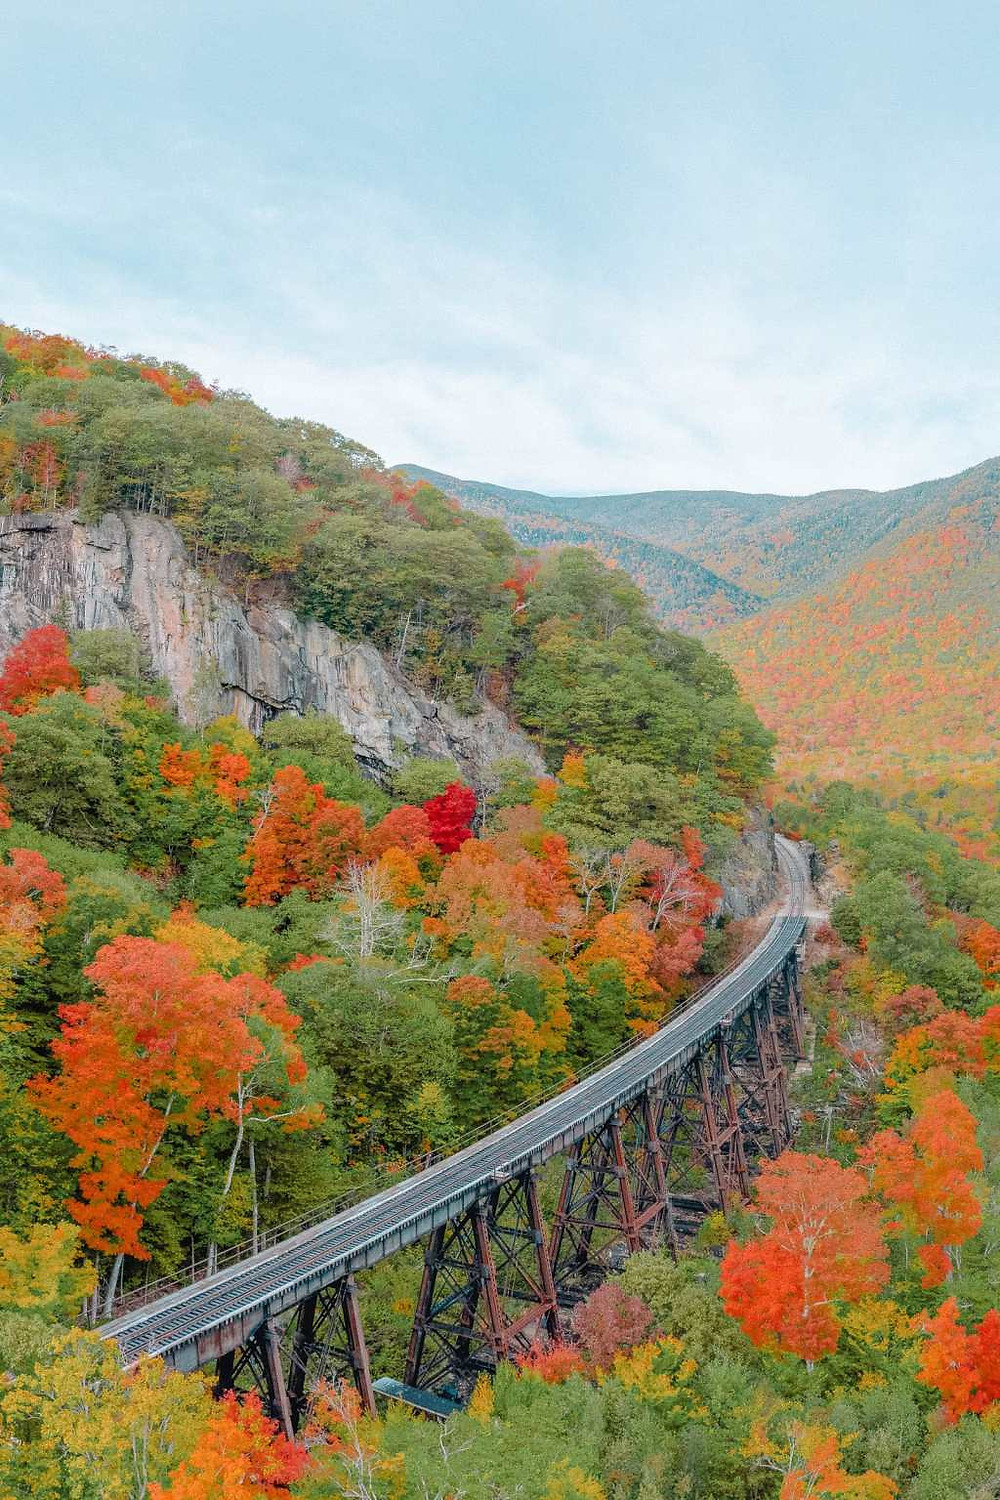 the Cog Railway in the White Mountains